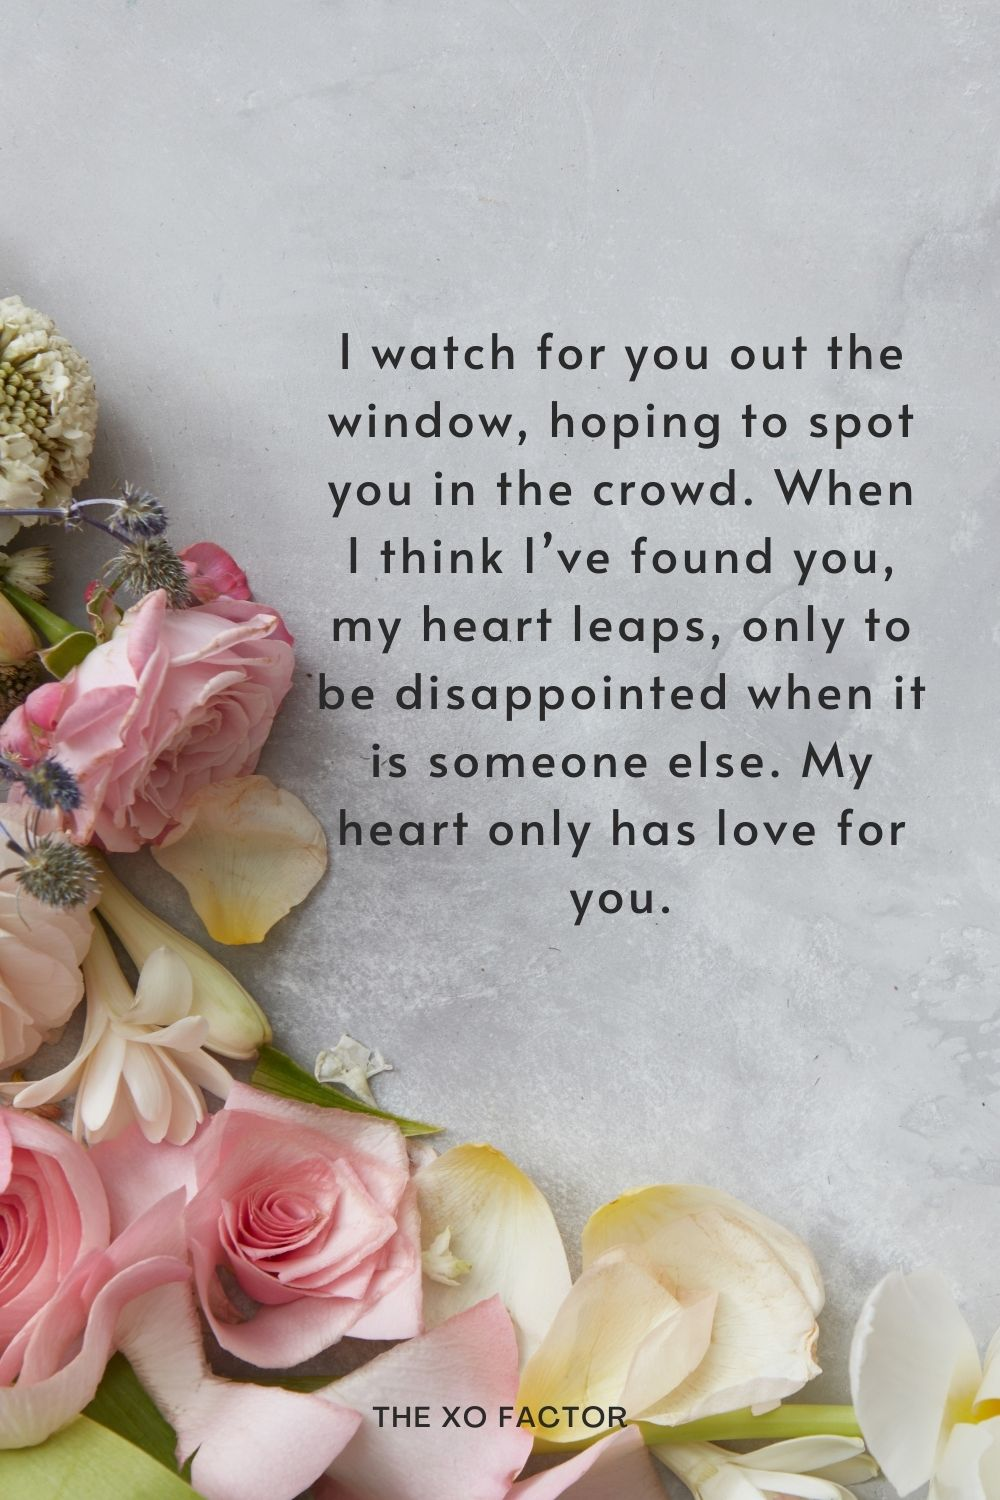 I watch for you out the window, hoping to spot you in the crowd. When I think I've found you, my heart leaps, only to be disappointed when it is someone else. My heart only has love for you.